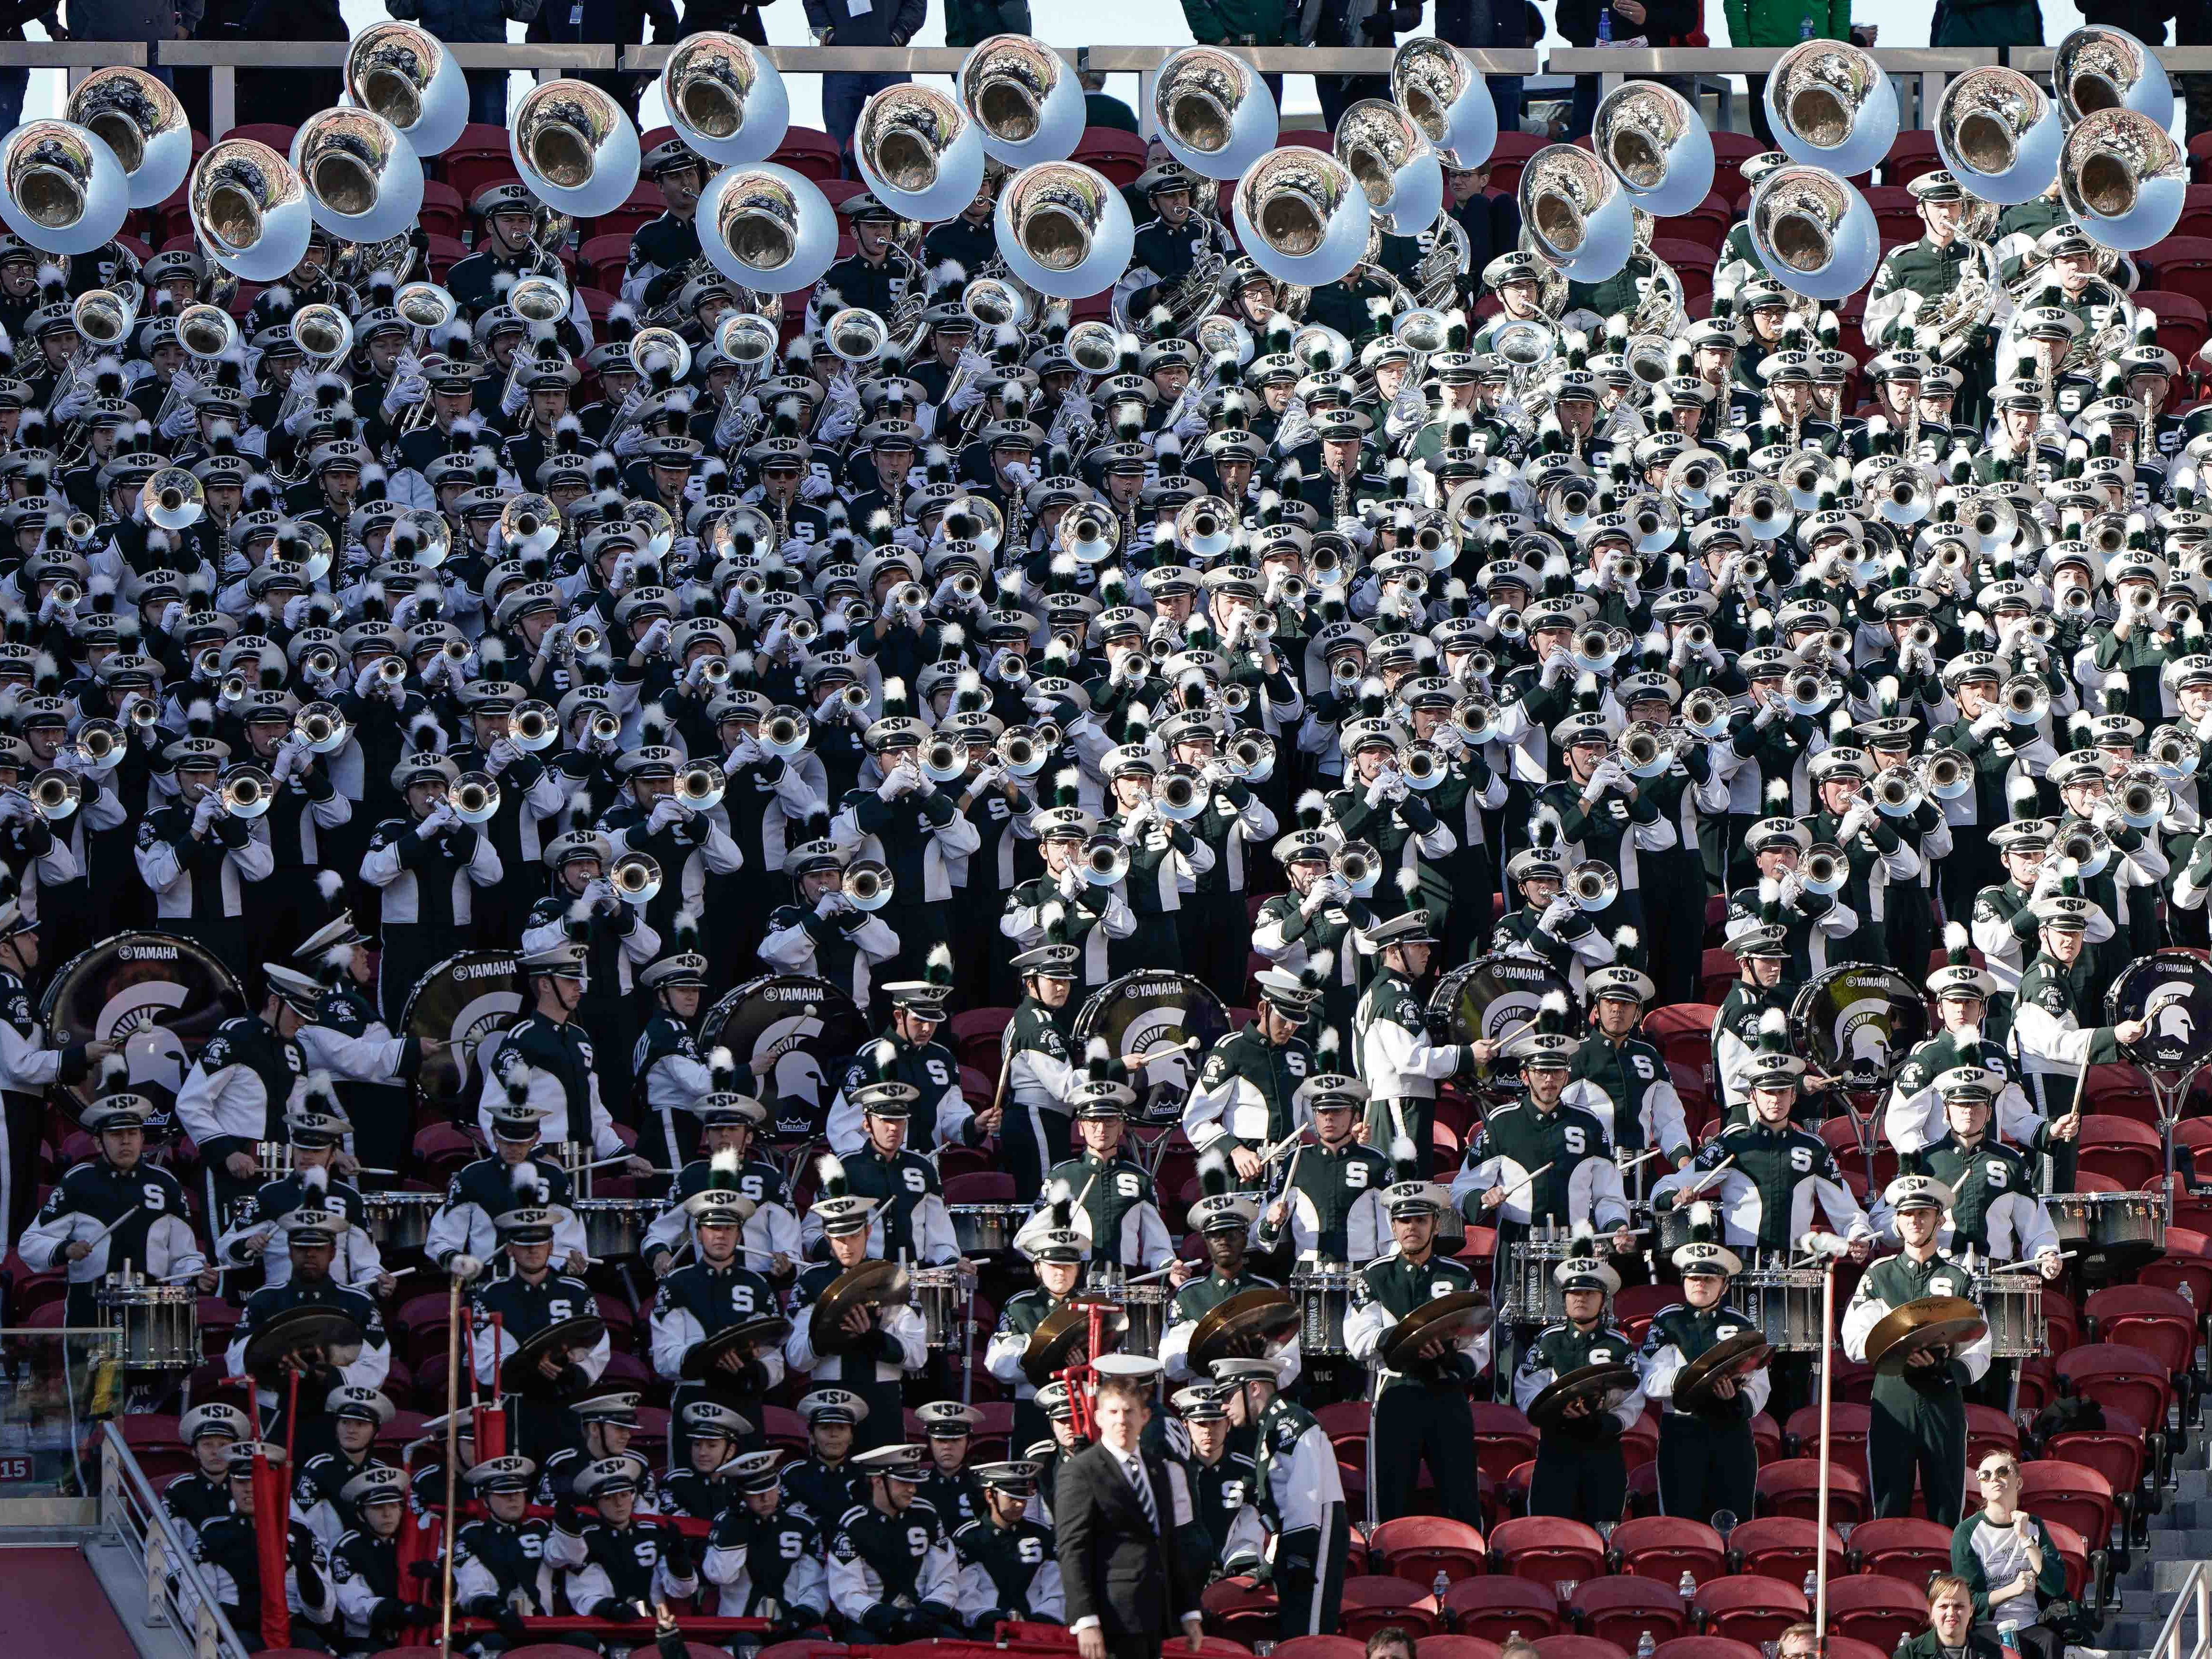 General view of the Michigan State Spartans band in the game against the Oregon Ducks during the second quarter at Levi's Stadium.